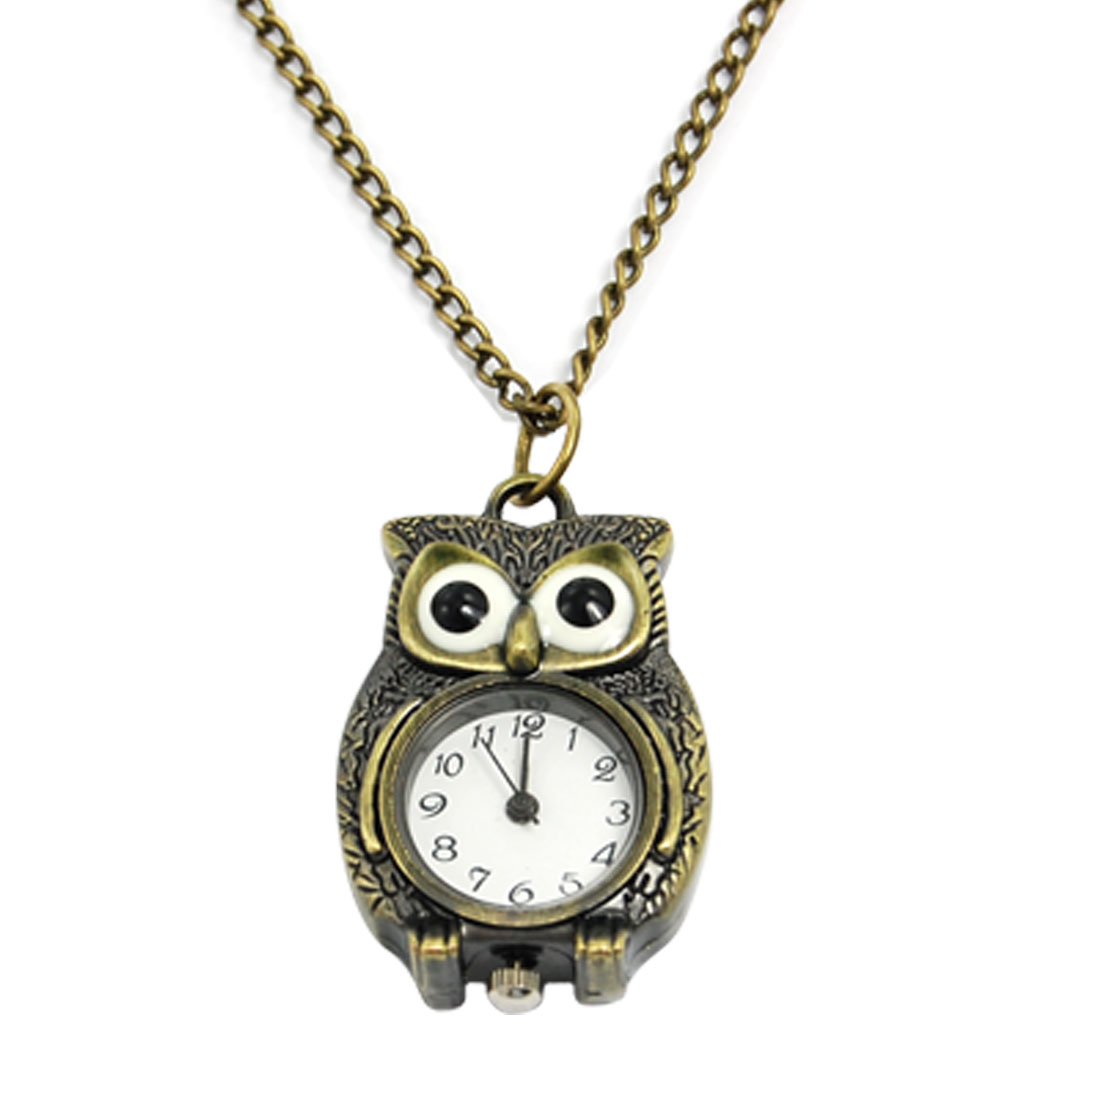 Ladies Bronze Tone Owl Shaped Pendant Necklace Watch